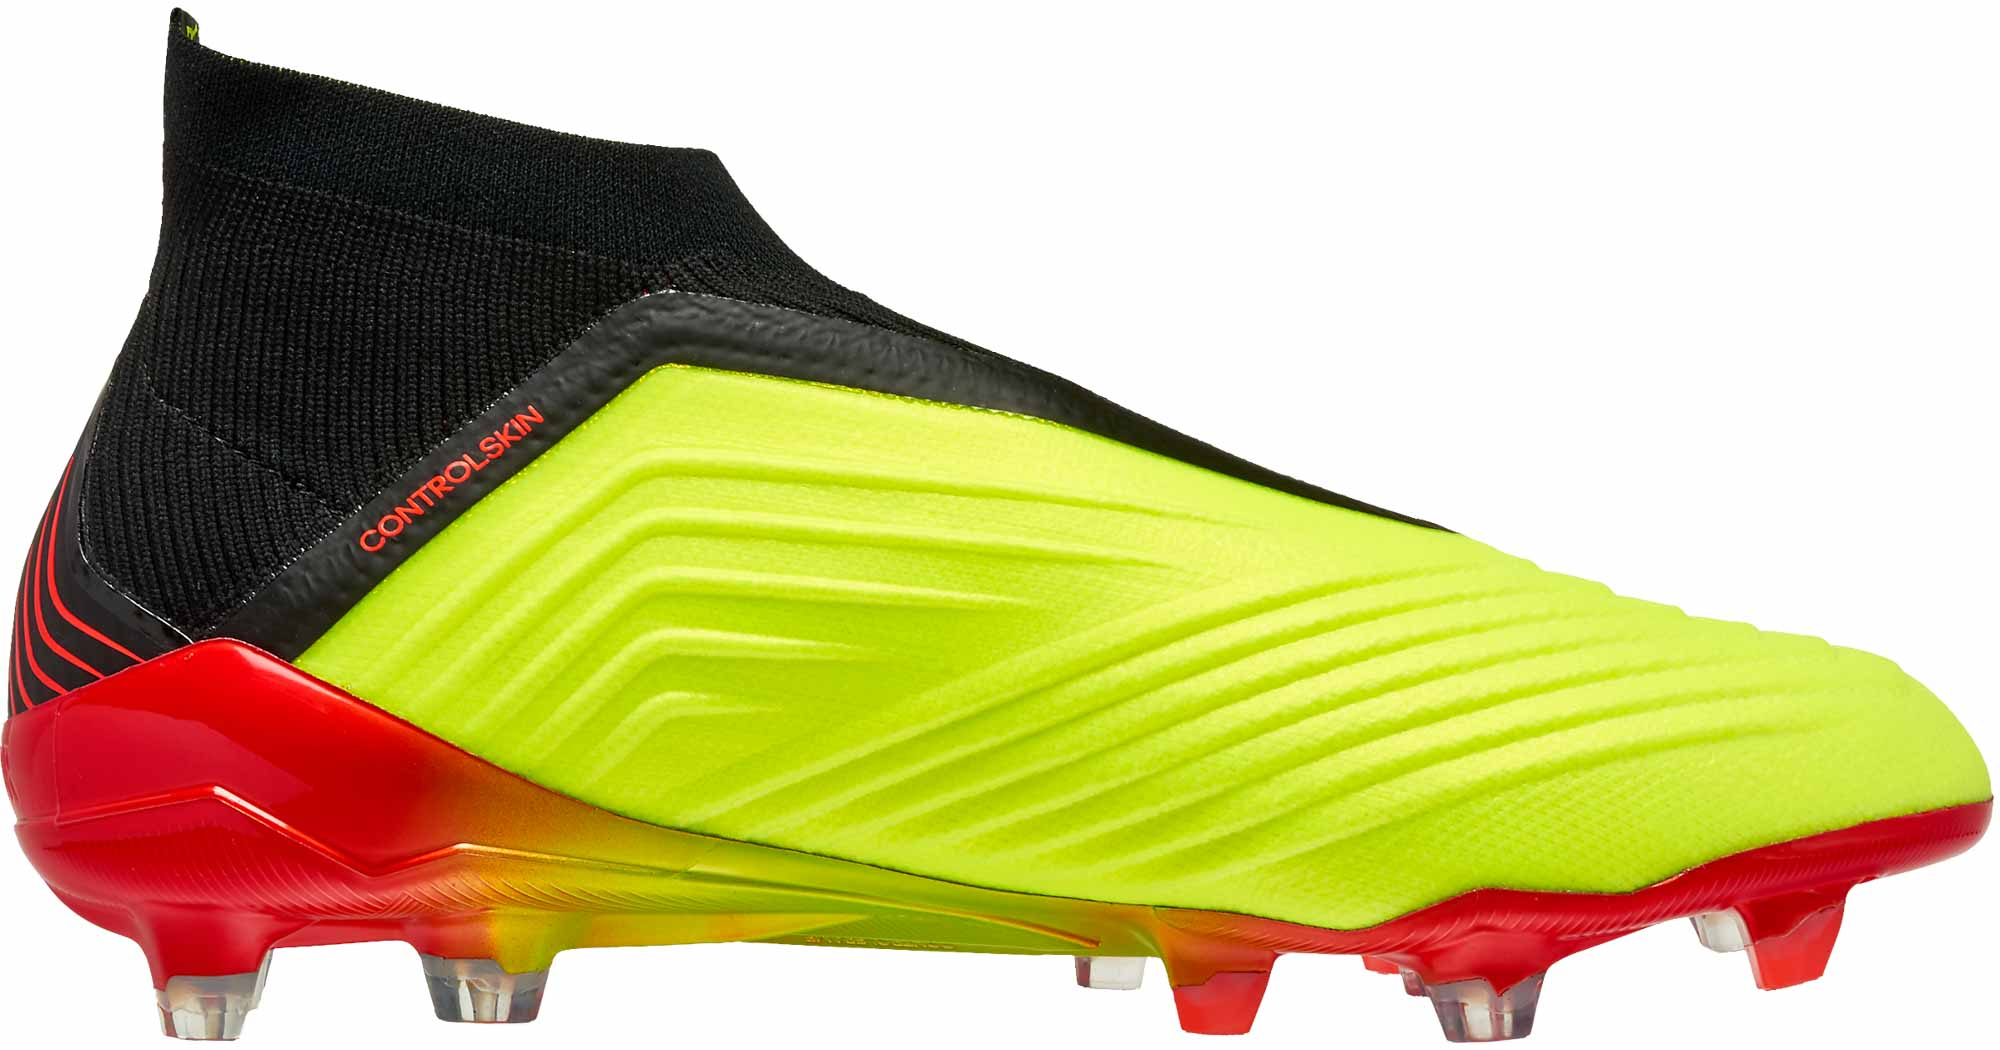 super popular b6e6f 87c46 adidas Predator 18 FG – Solar YellowBlackSolar Red